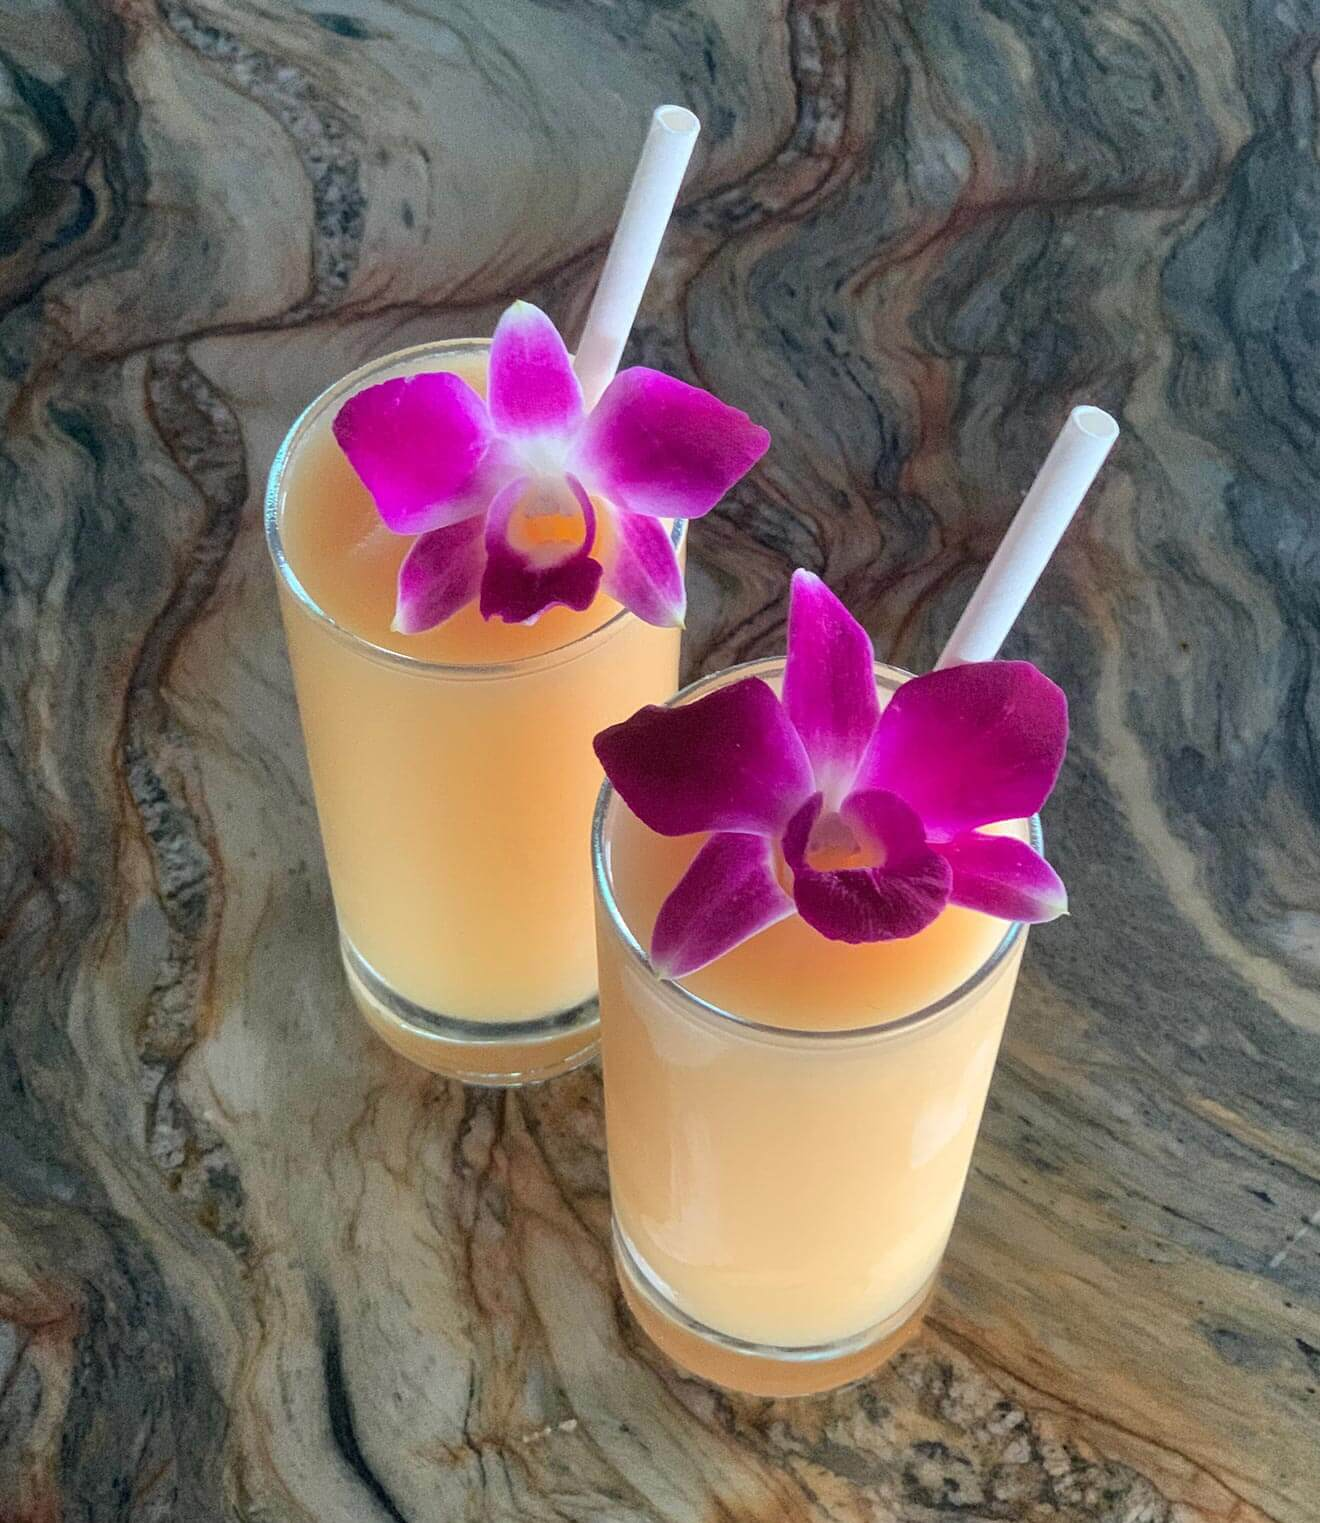 Tropic Like It's Hot, cocktails with edible purple flower garnish